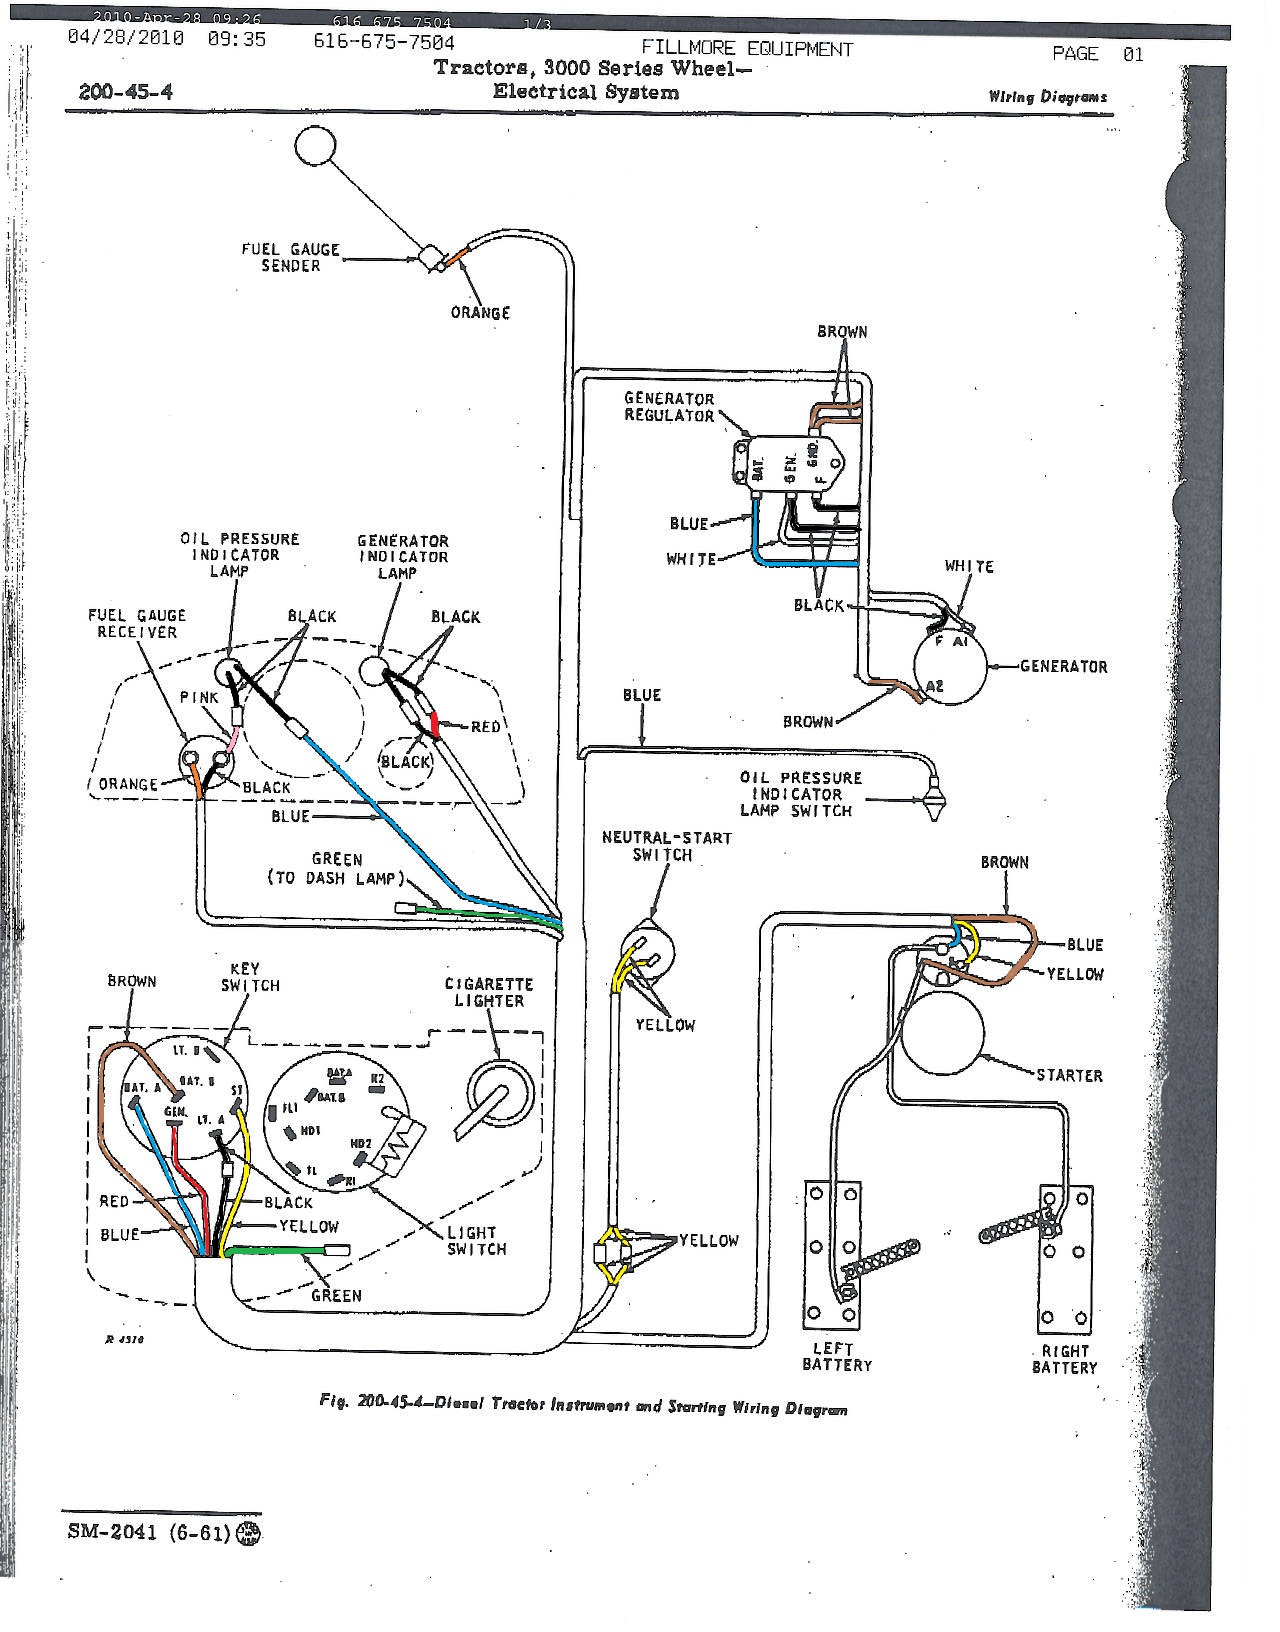 hight resolution of john deere 3020 wiring harness diagram wiring diagrams konsult john deere 2020 wiring harness